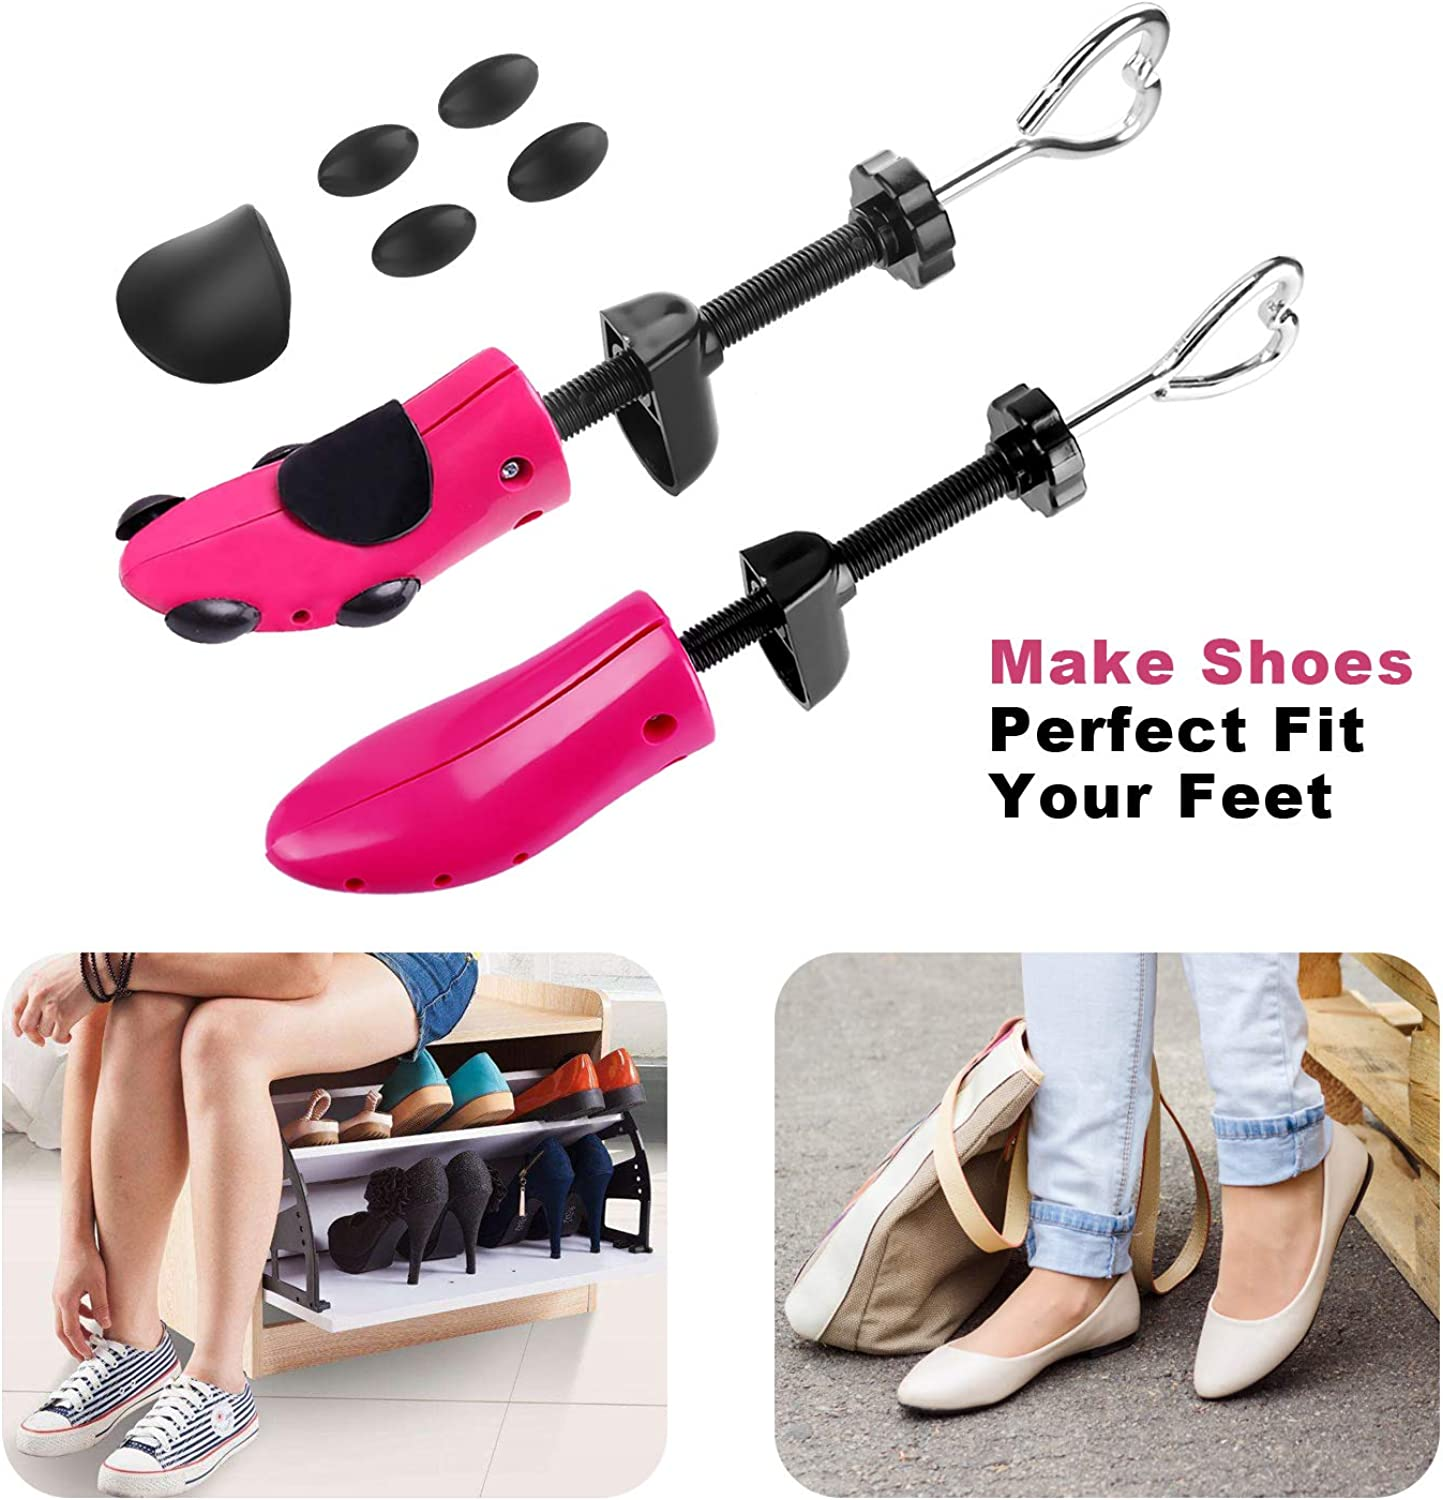 KevenAnna Shoe Stretcher with Shoe Horn Boot Shaper Stands and Carrying Bag Womens Shoes